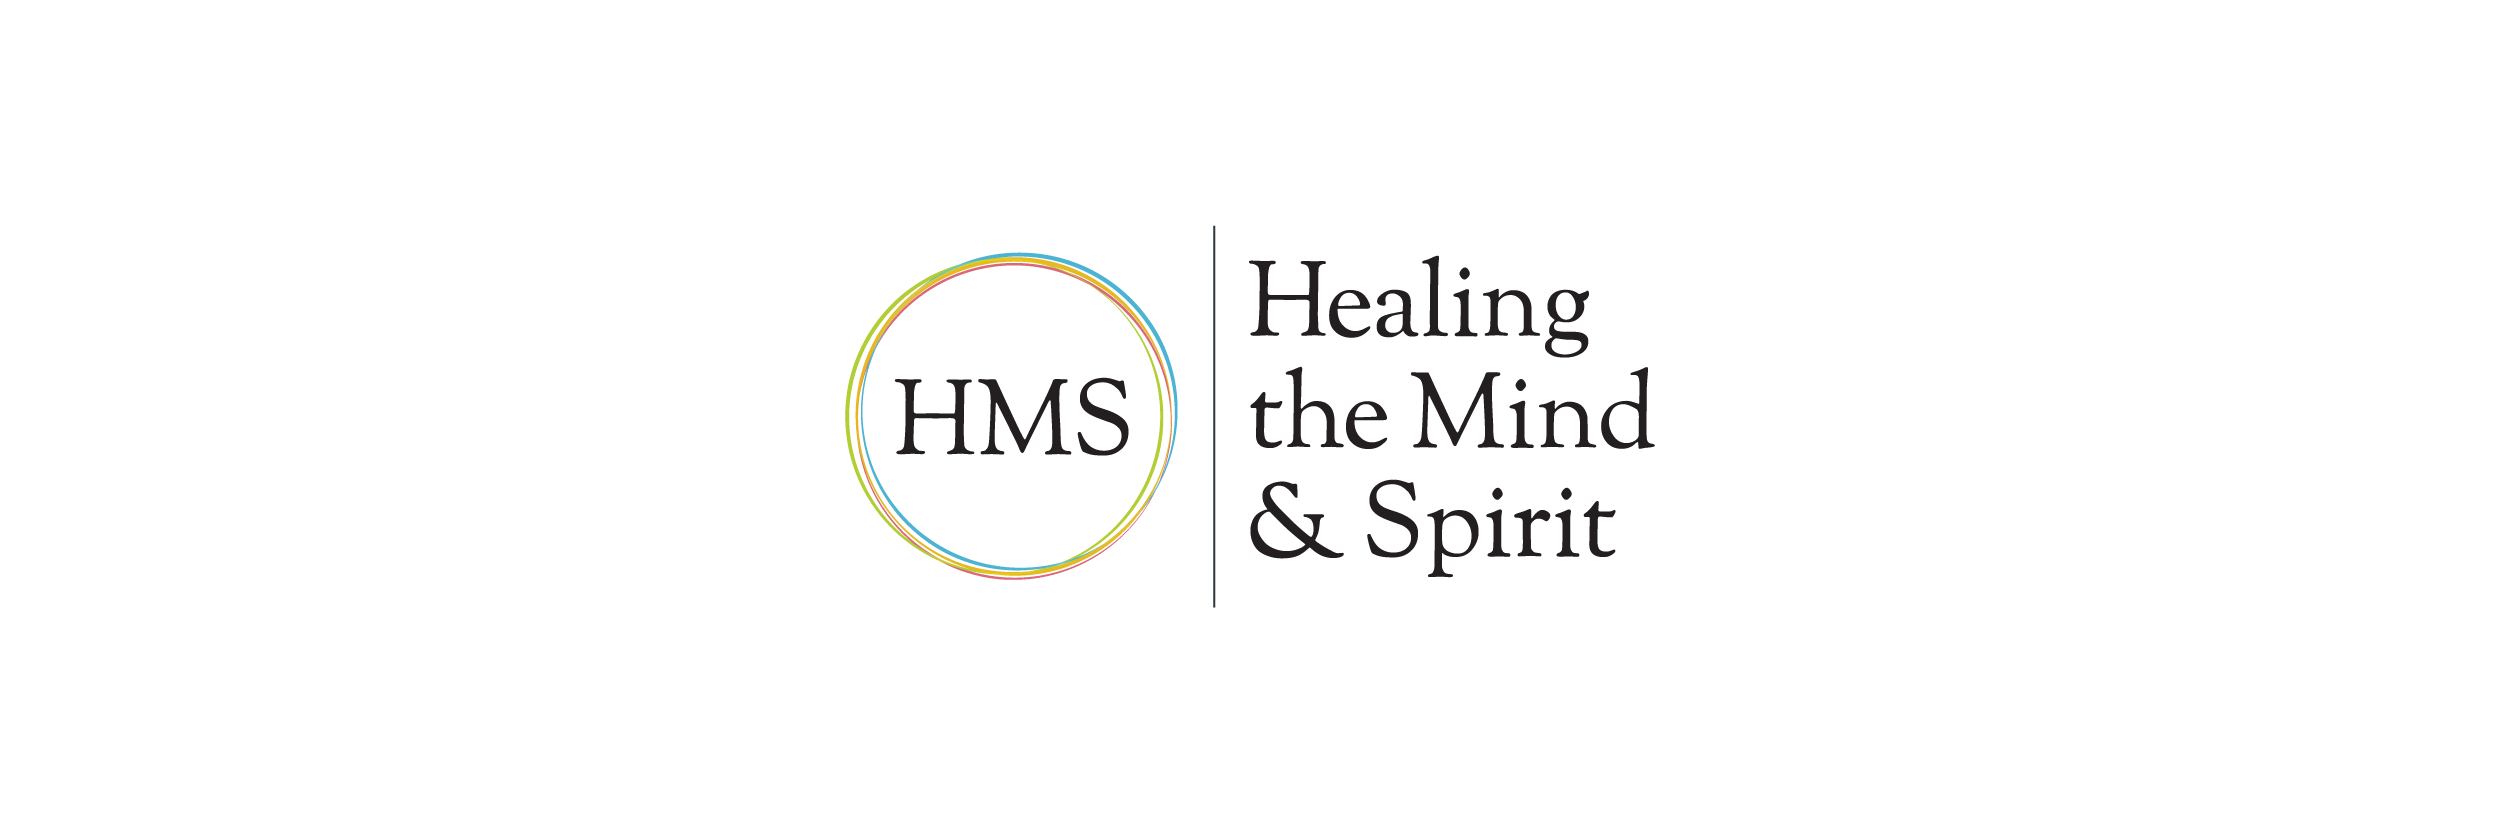 Healing the Mind & Spirit by Filipe Amado